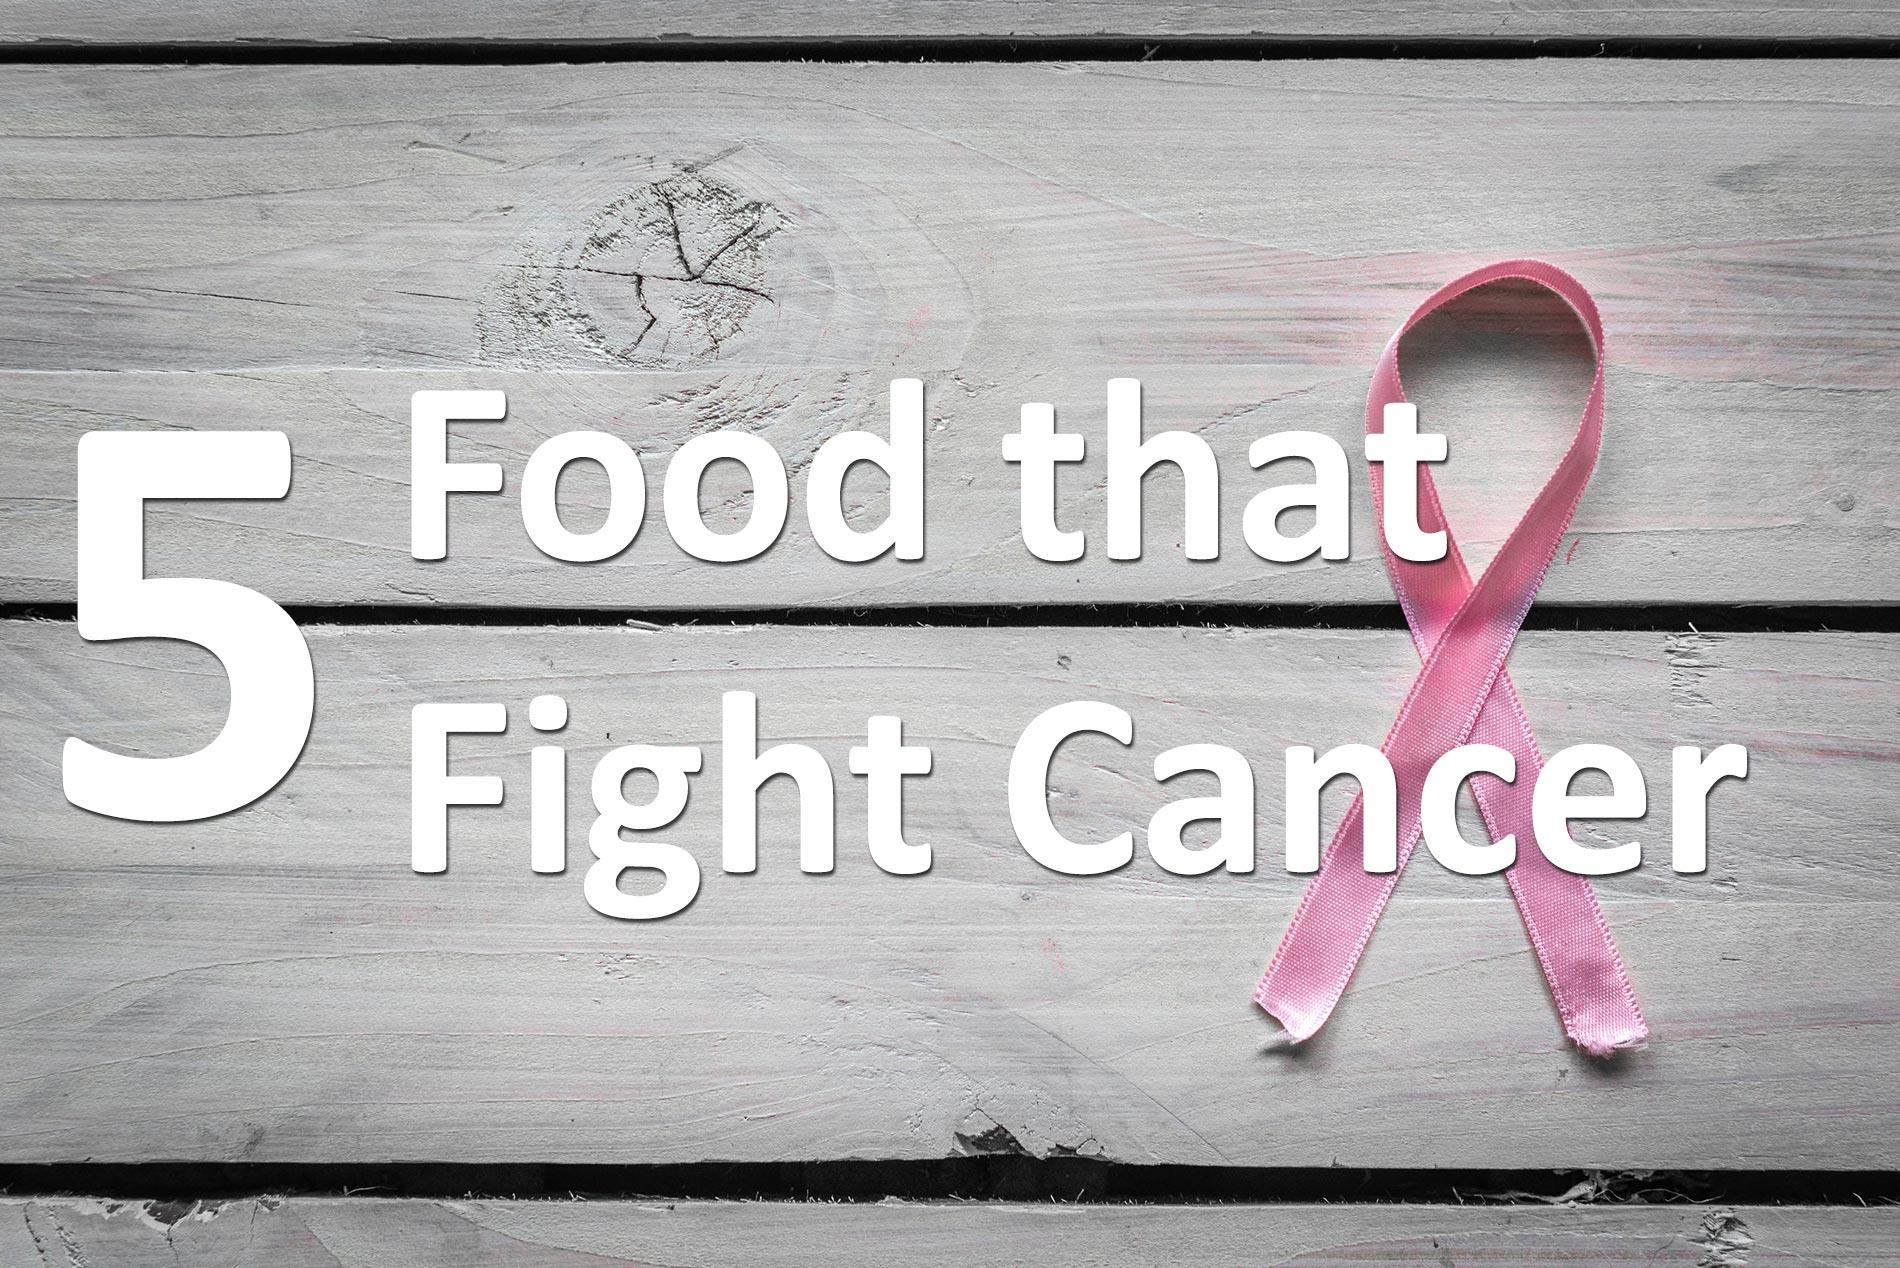 5 Foods that Fight cancer